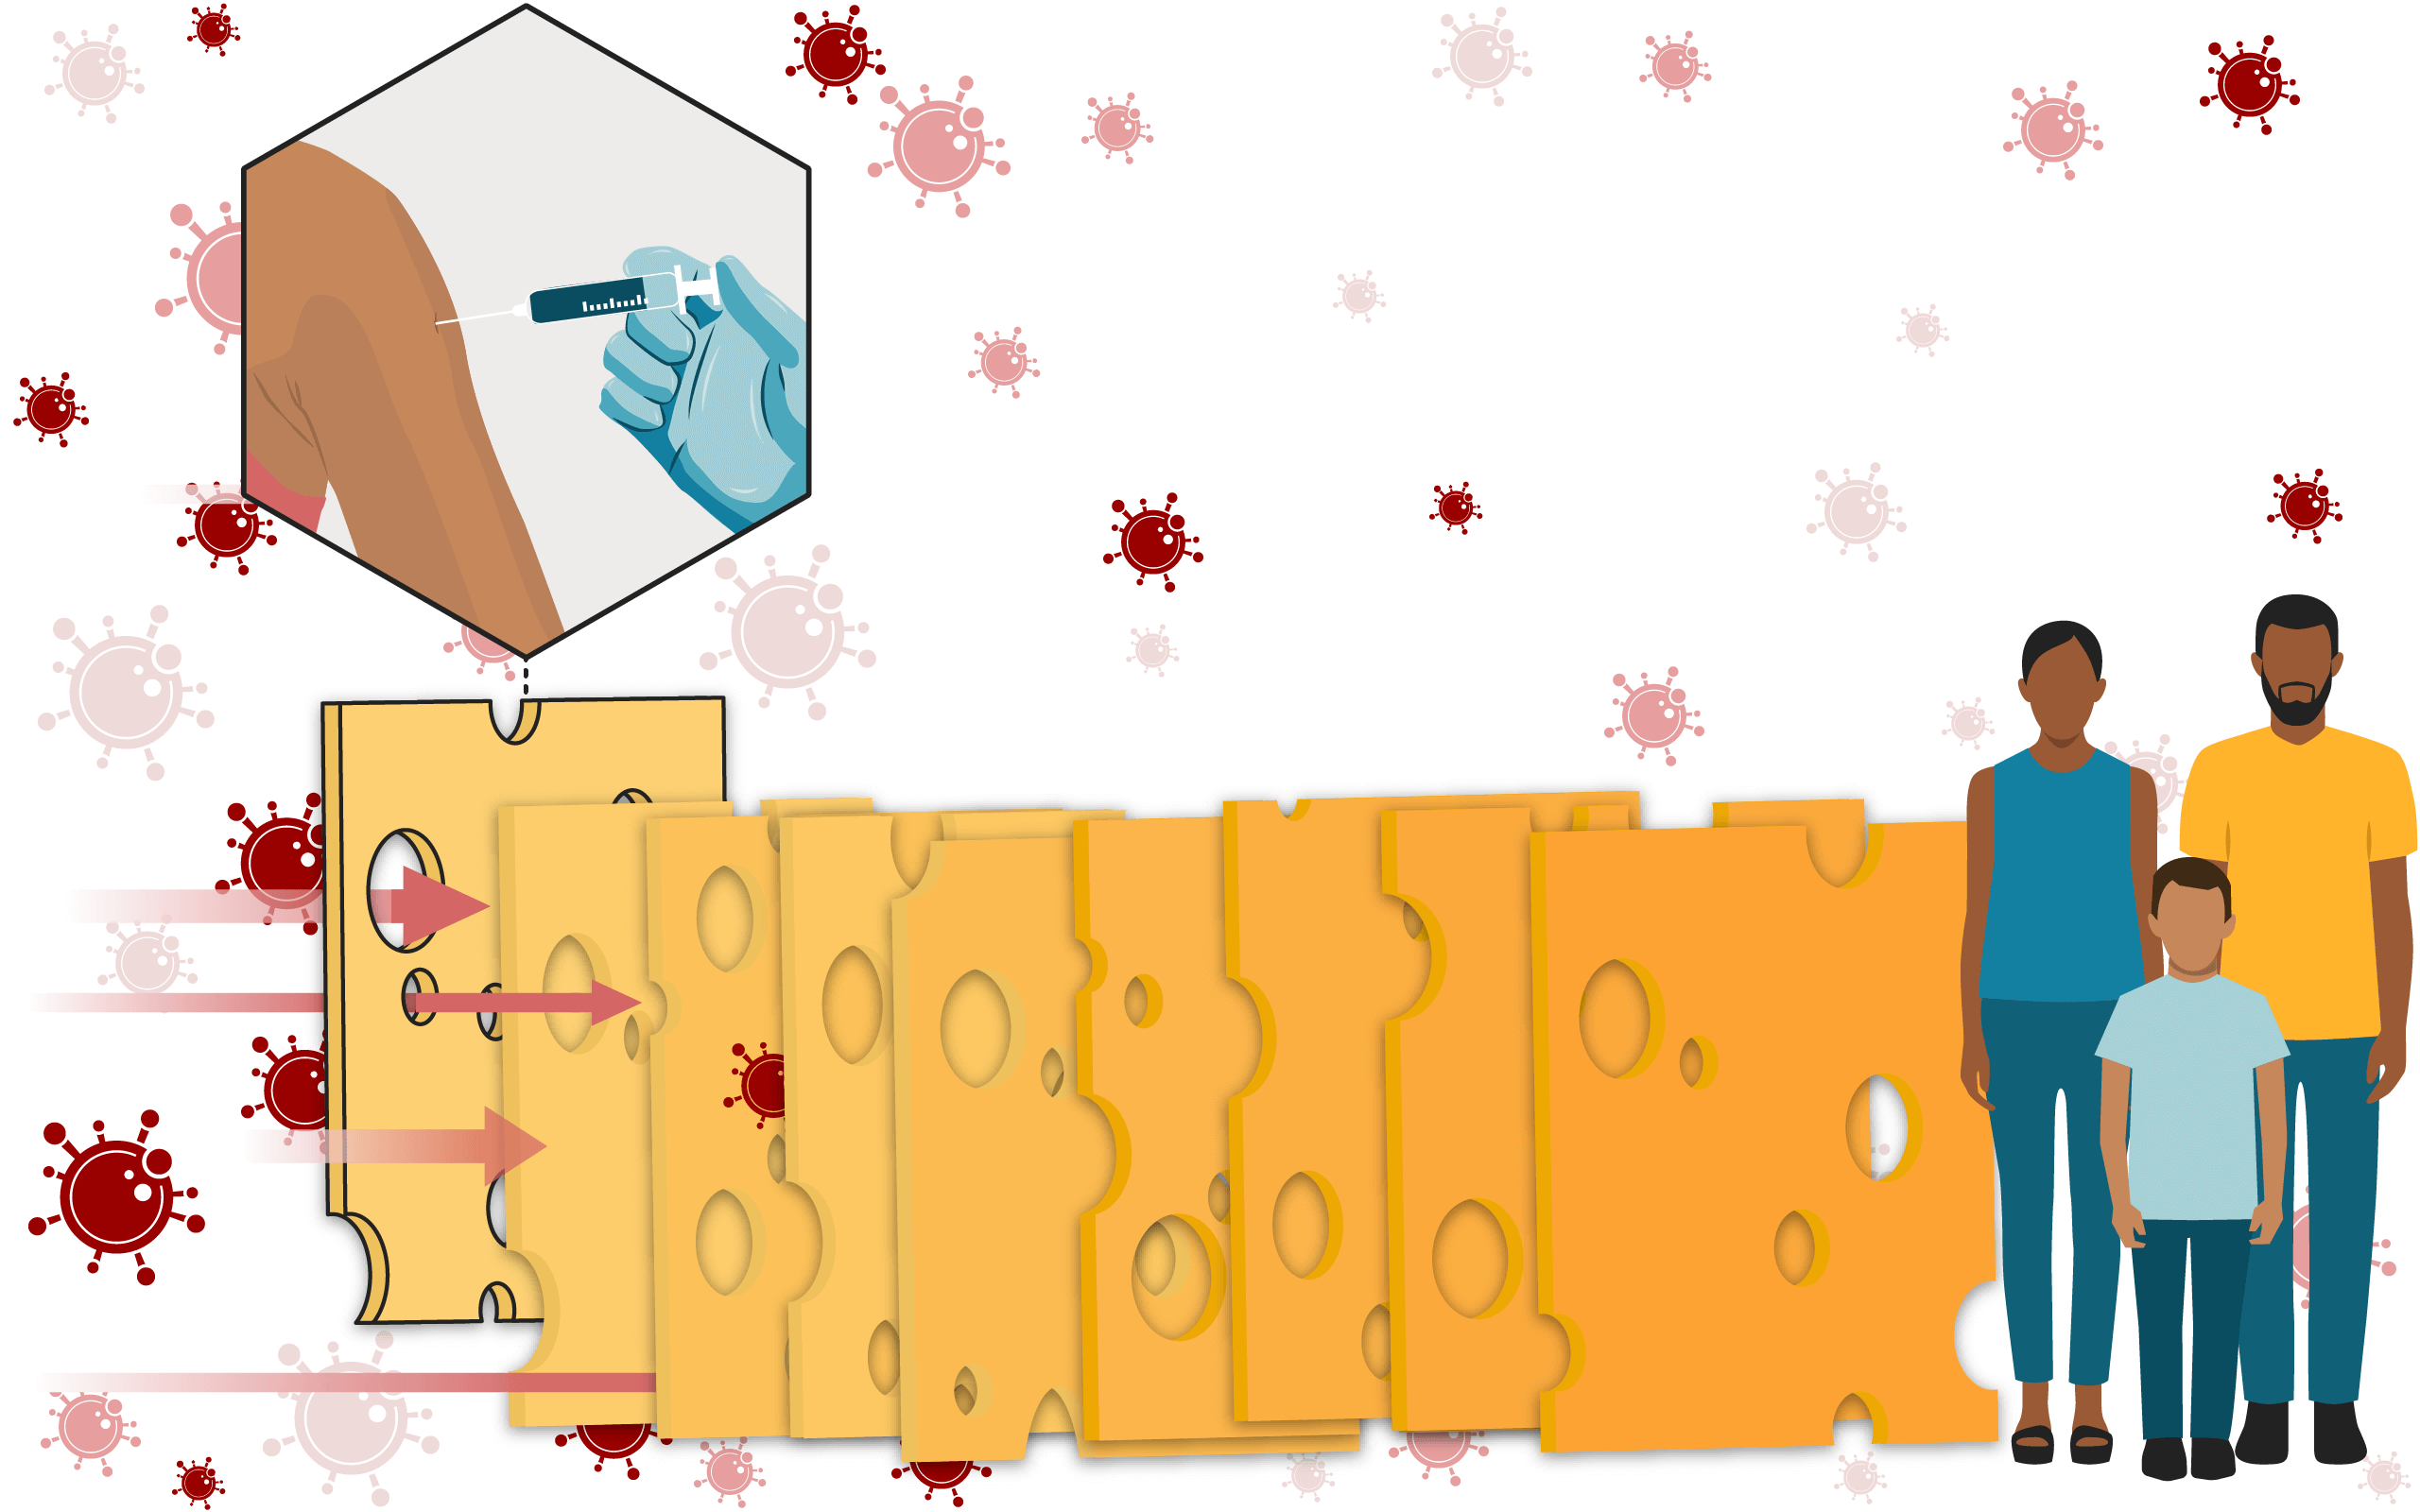 Illustration of a Swiss cheese, with a slice highlighted, representing vaccines